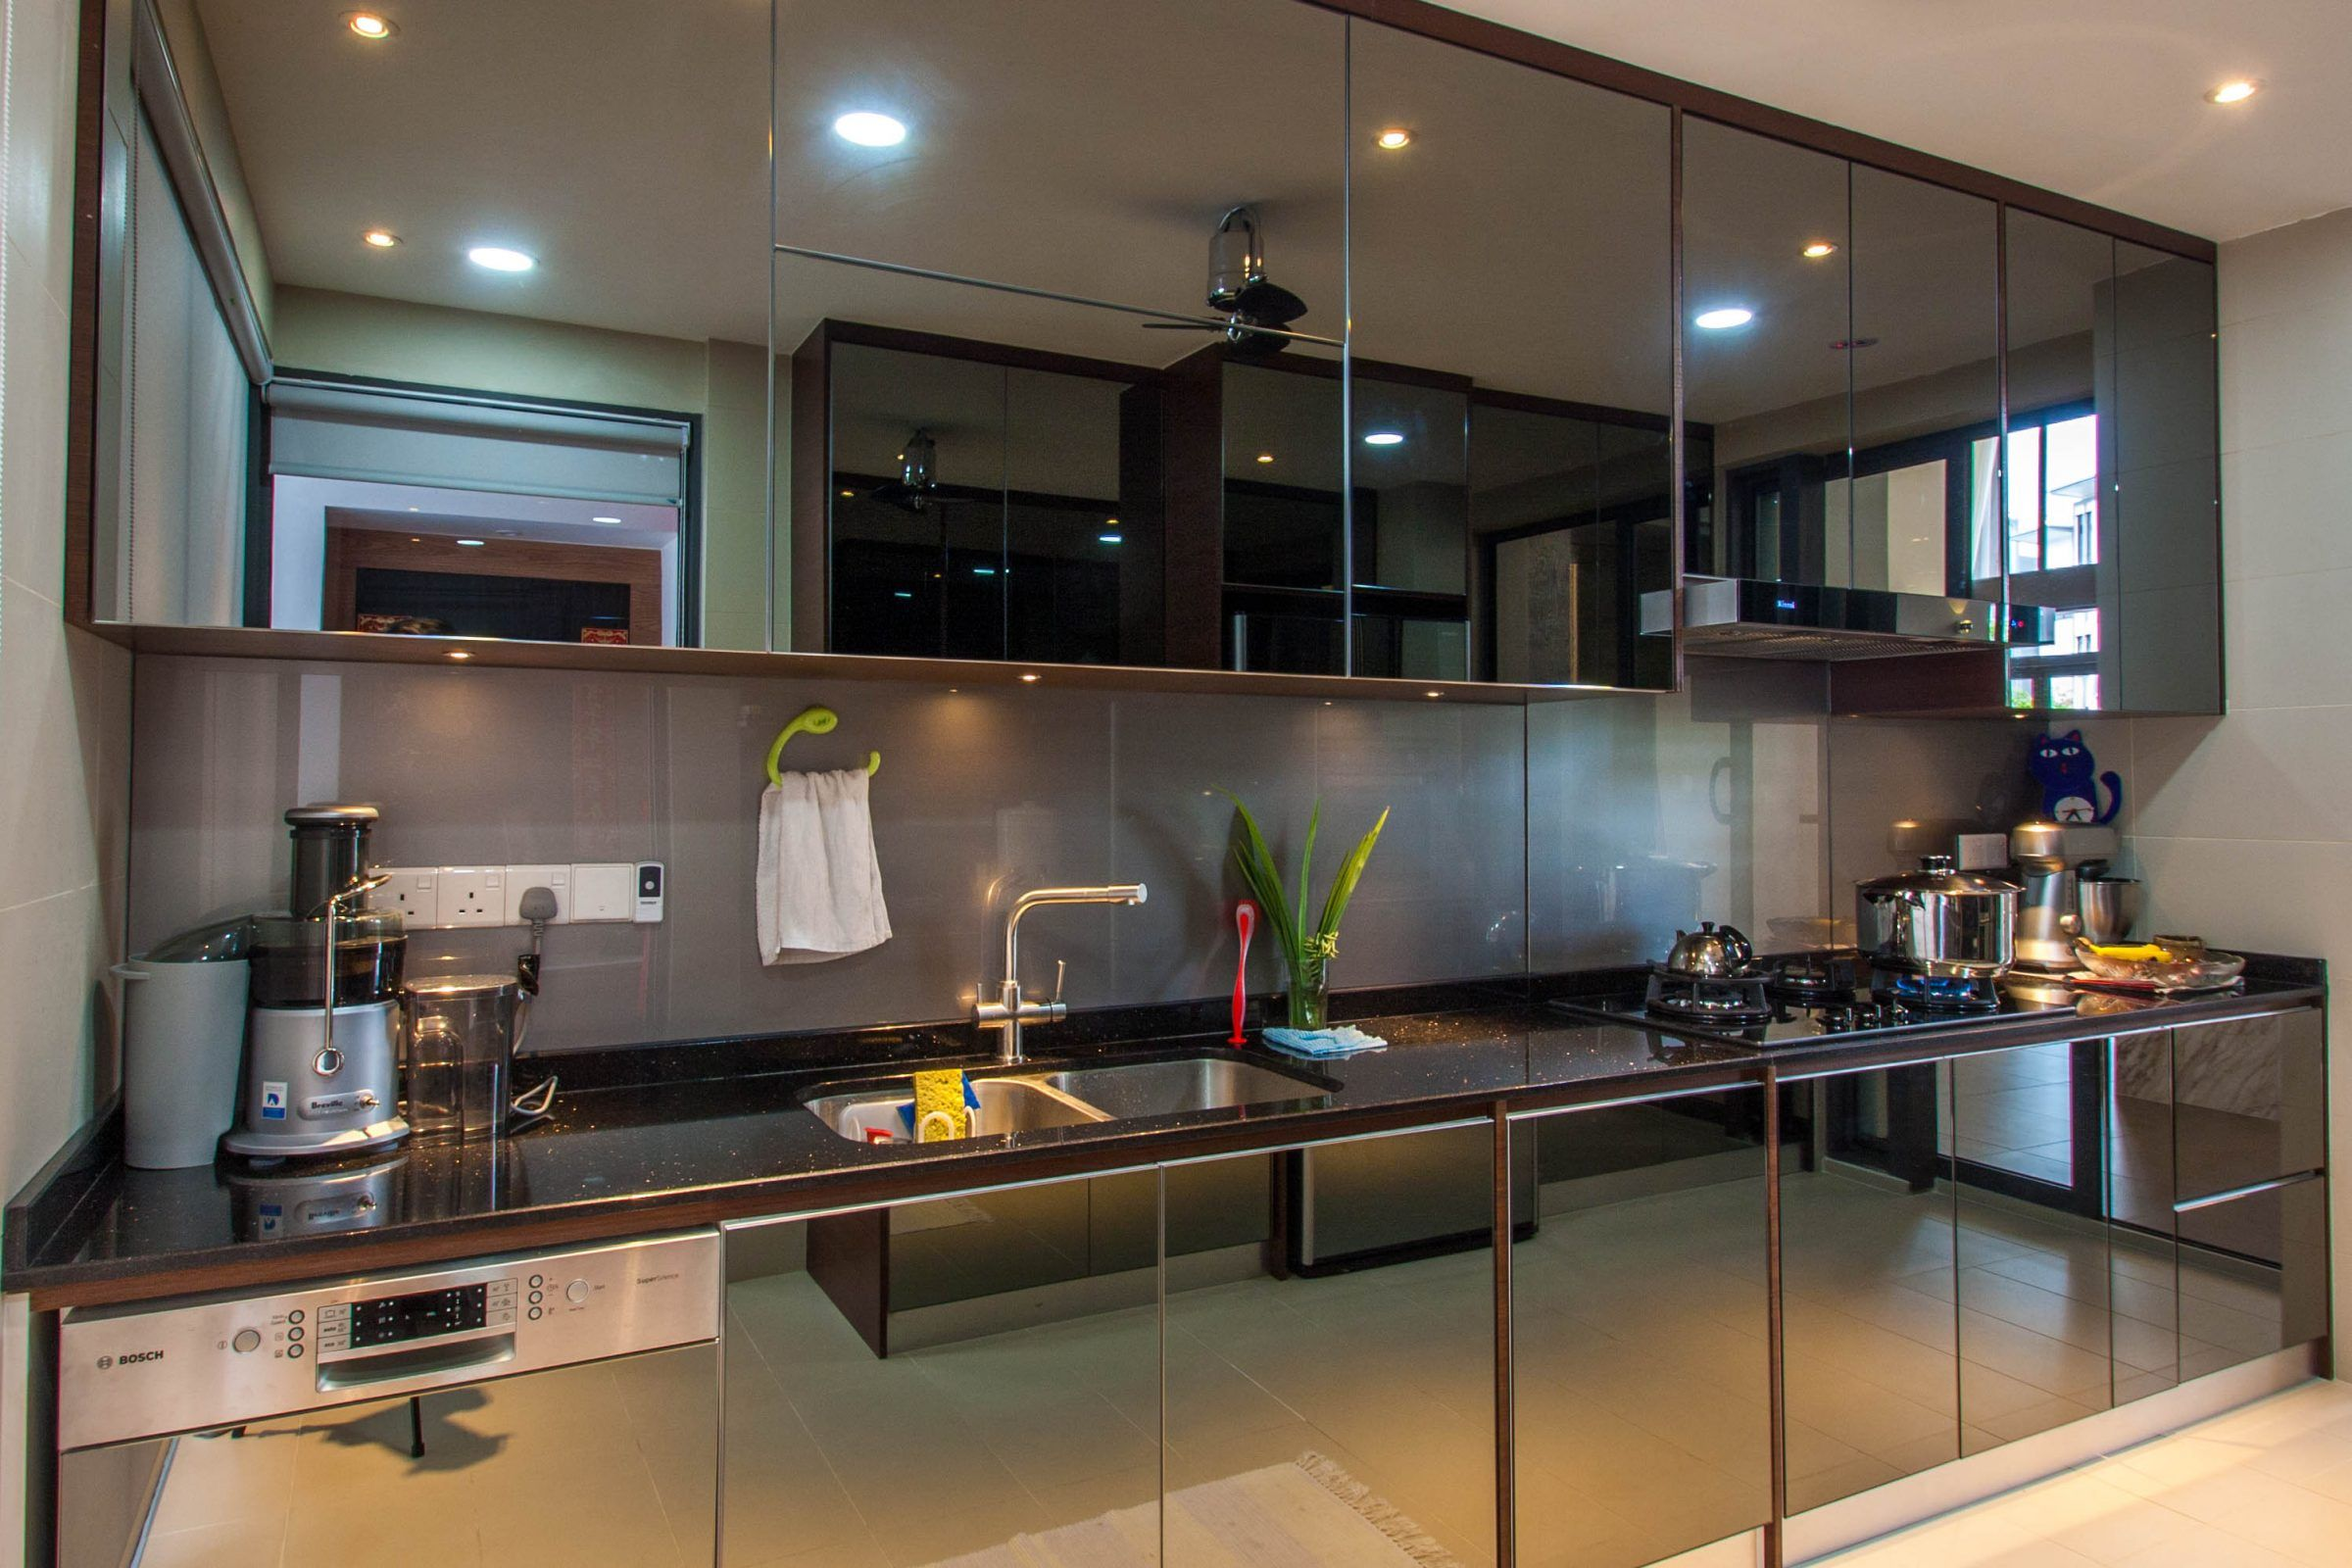 Sleek And Shiny Pros And Cons Of Using Reflective Kitchen Cabinets Malaysia S No 1 Interior Design Cha Interior Design Kitchen Kitchen Design Kitchen Prices